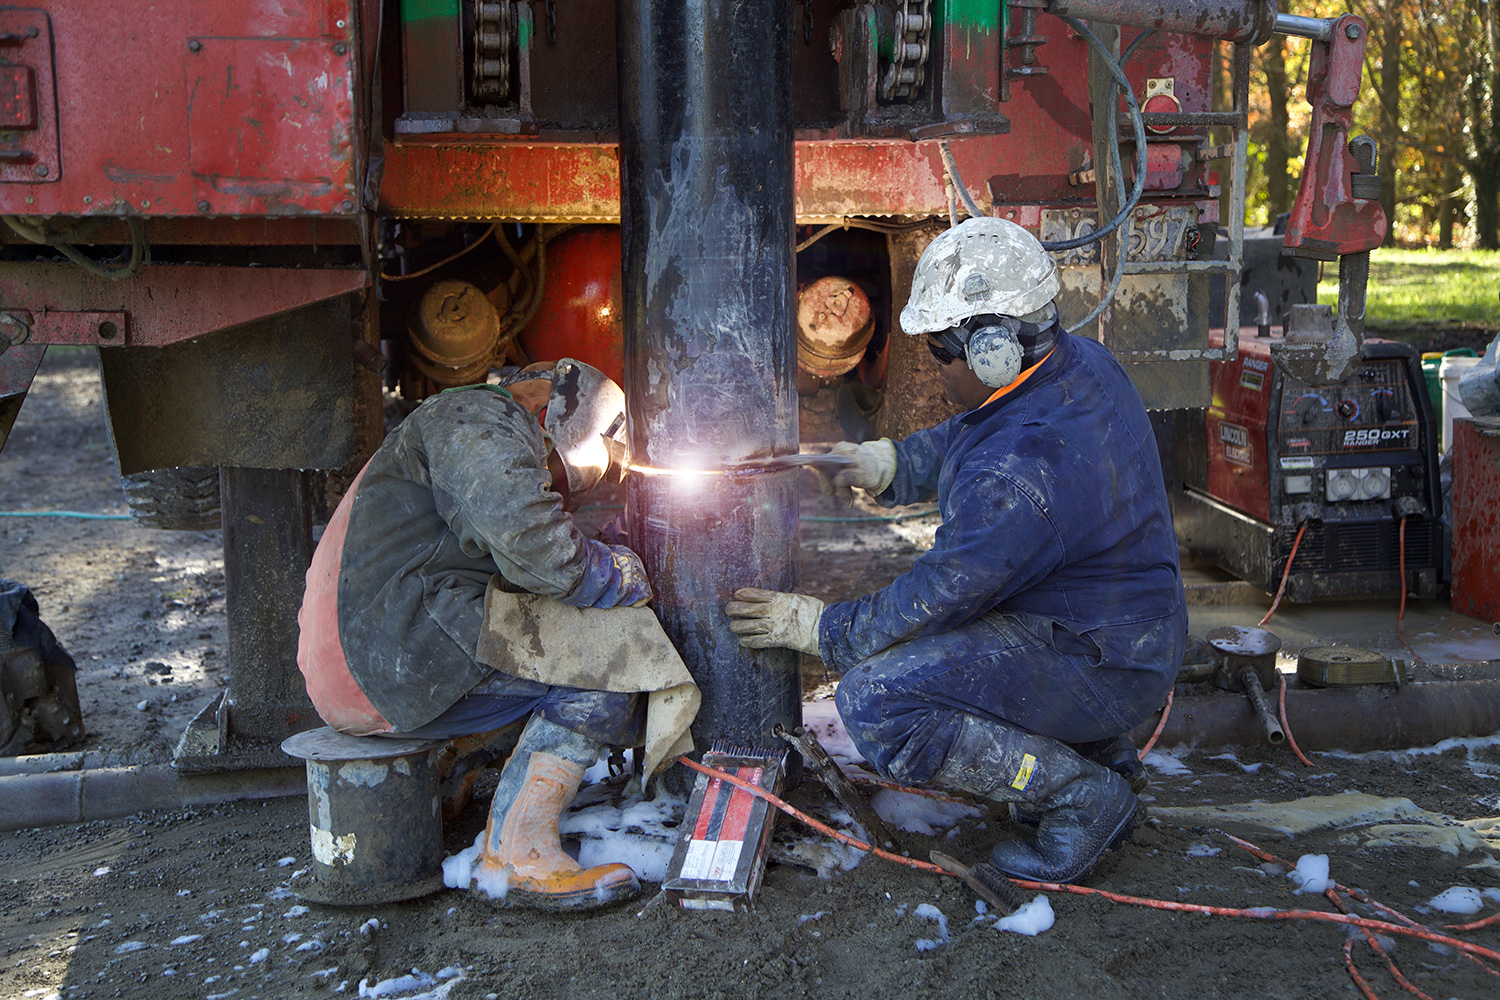 https://drilling.co.nz/cms/wp-content/uploads/2020/03/ww-welding-W.jpg